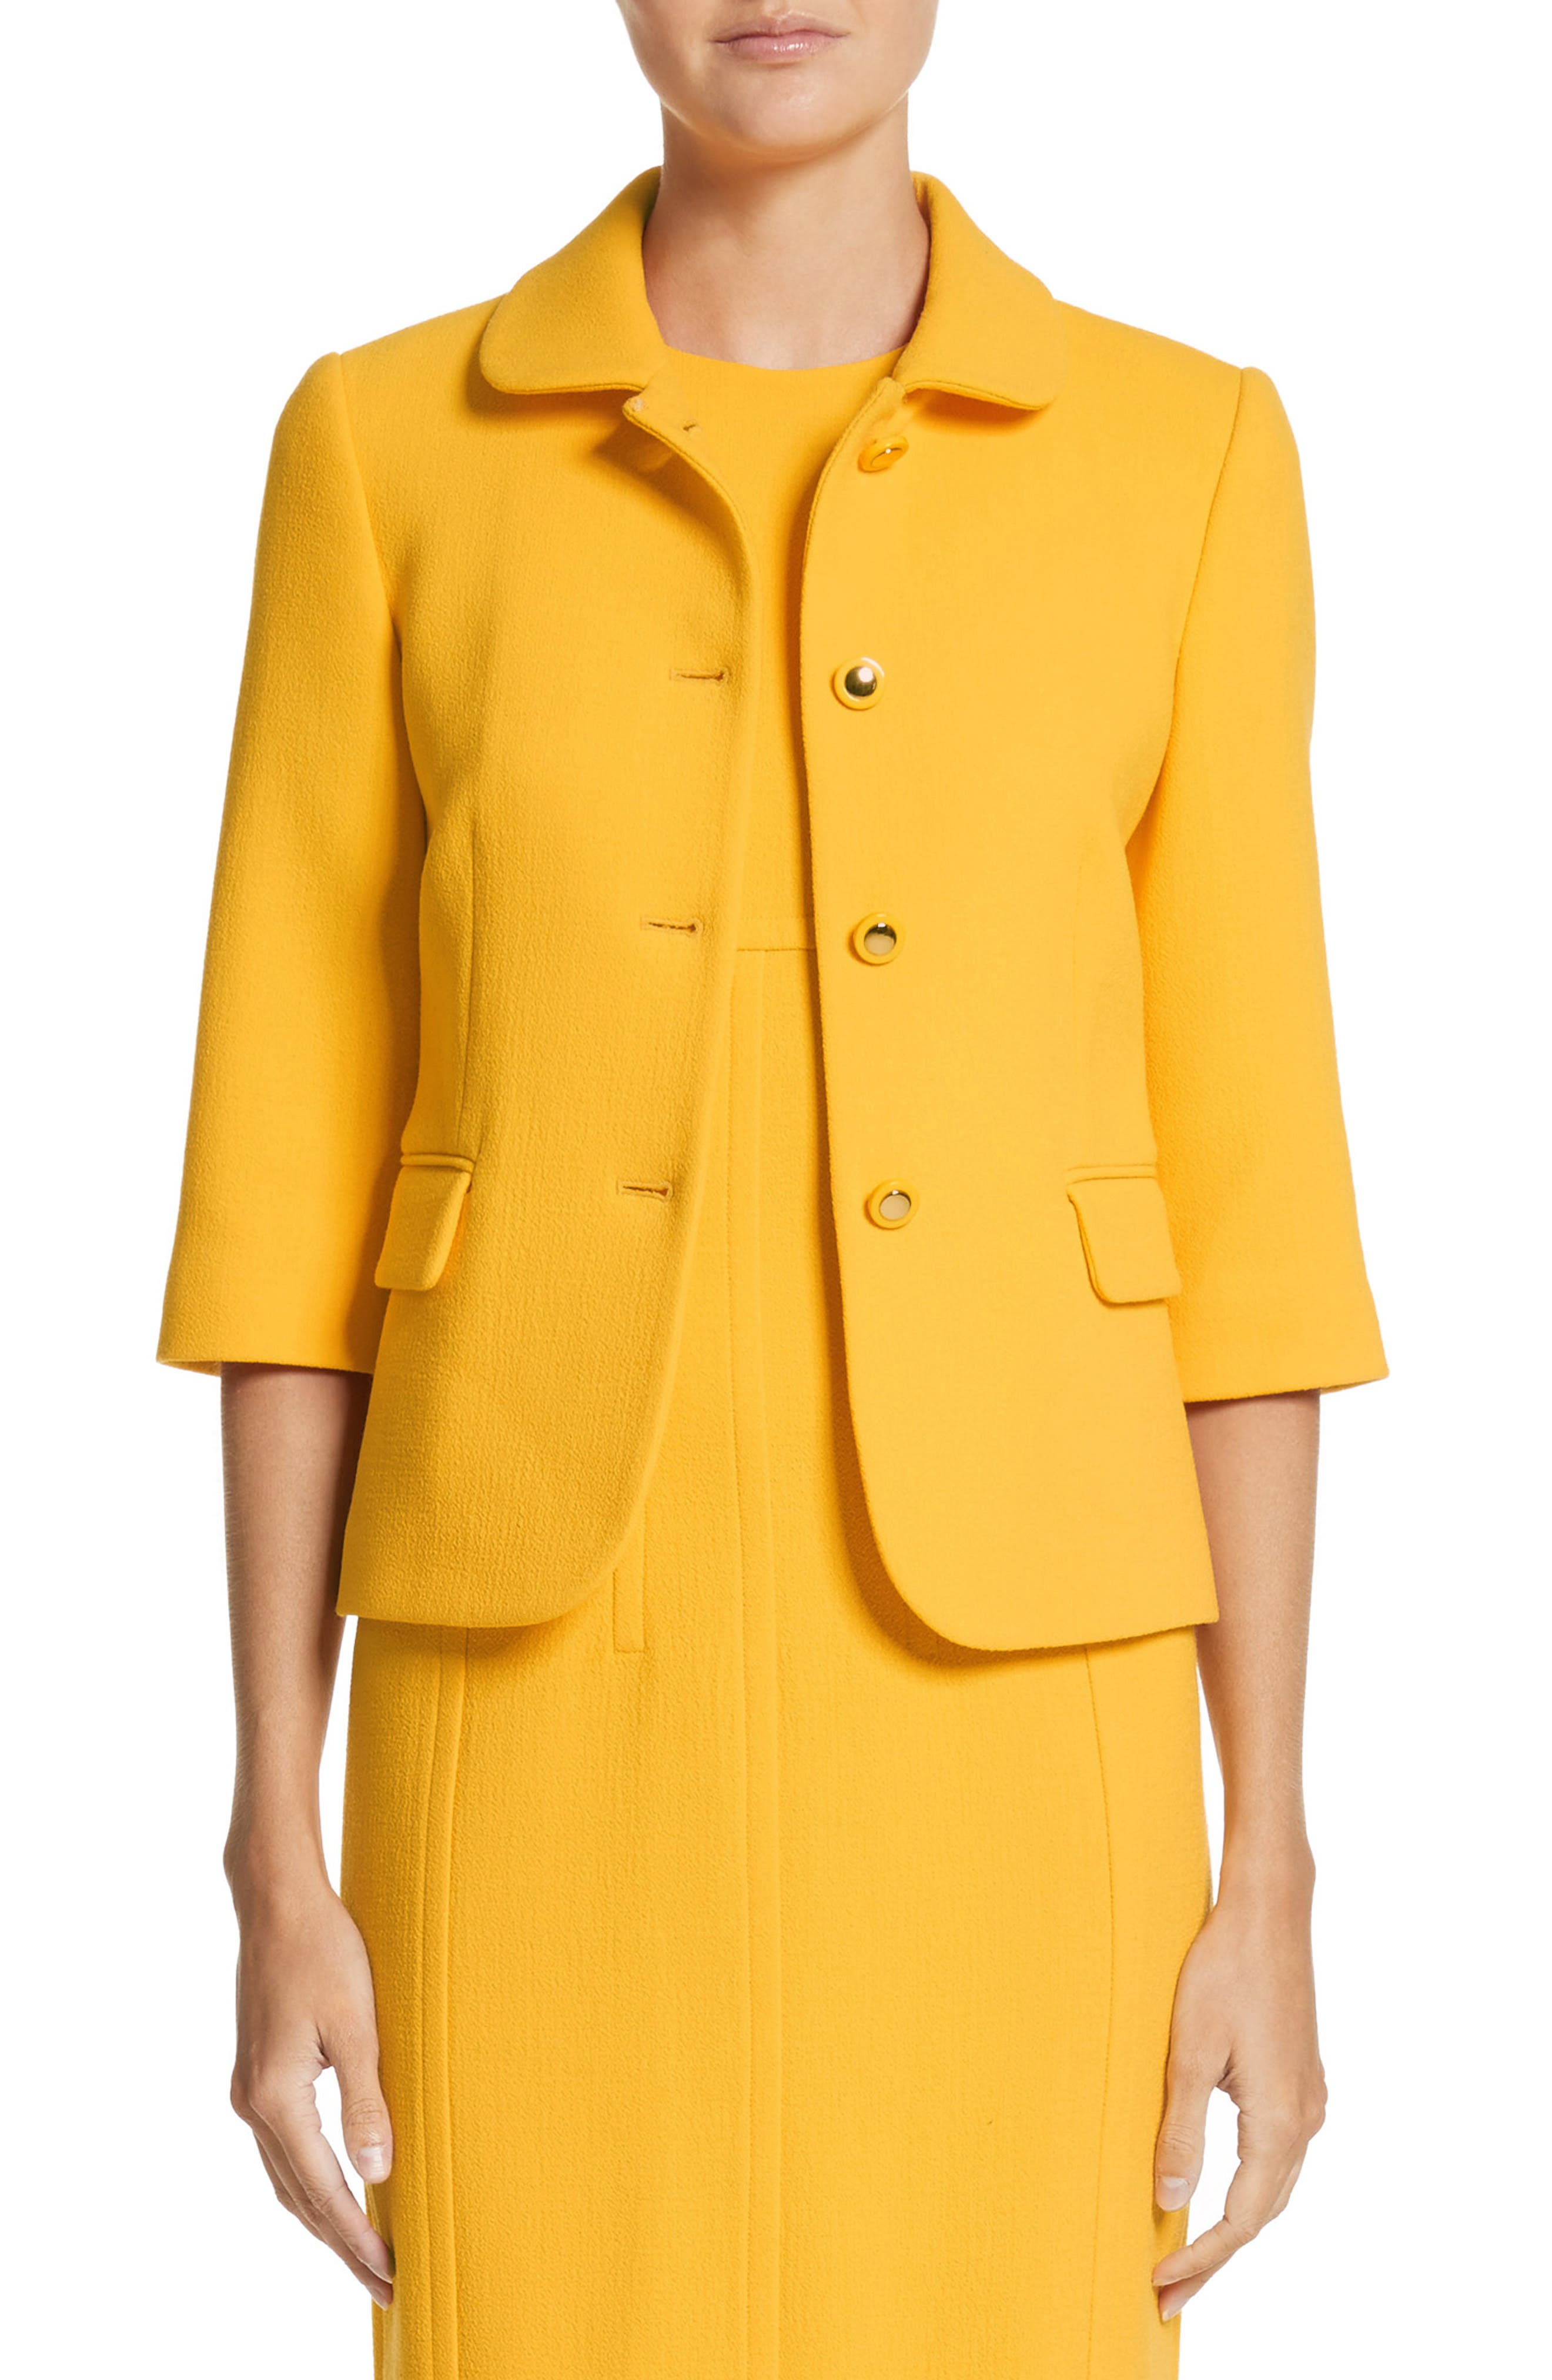 Michael Kors Stretch Bouclé Crepe Jacket